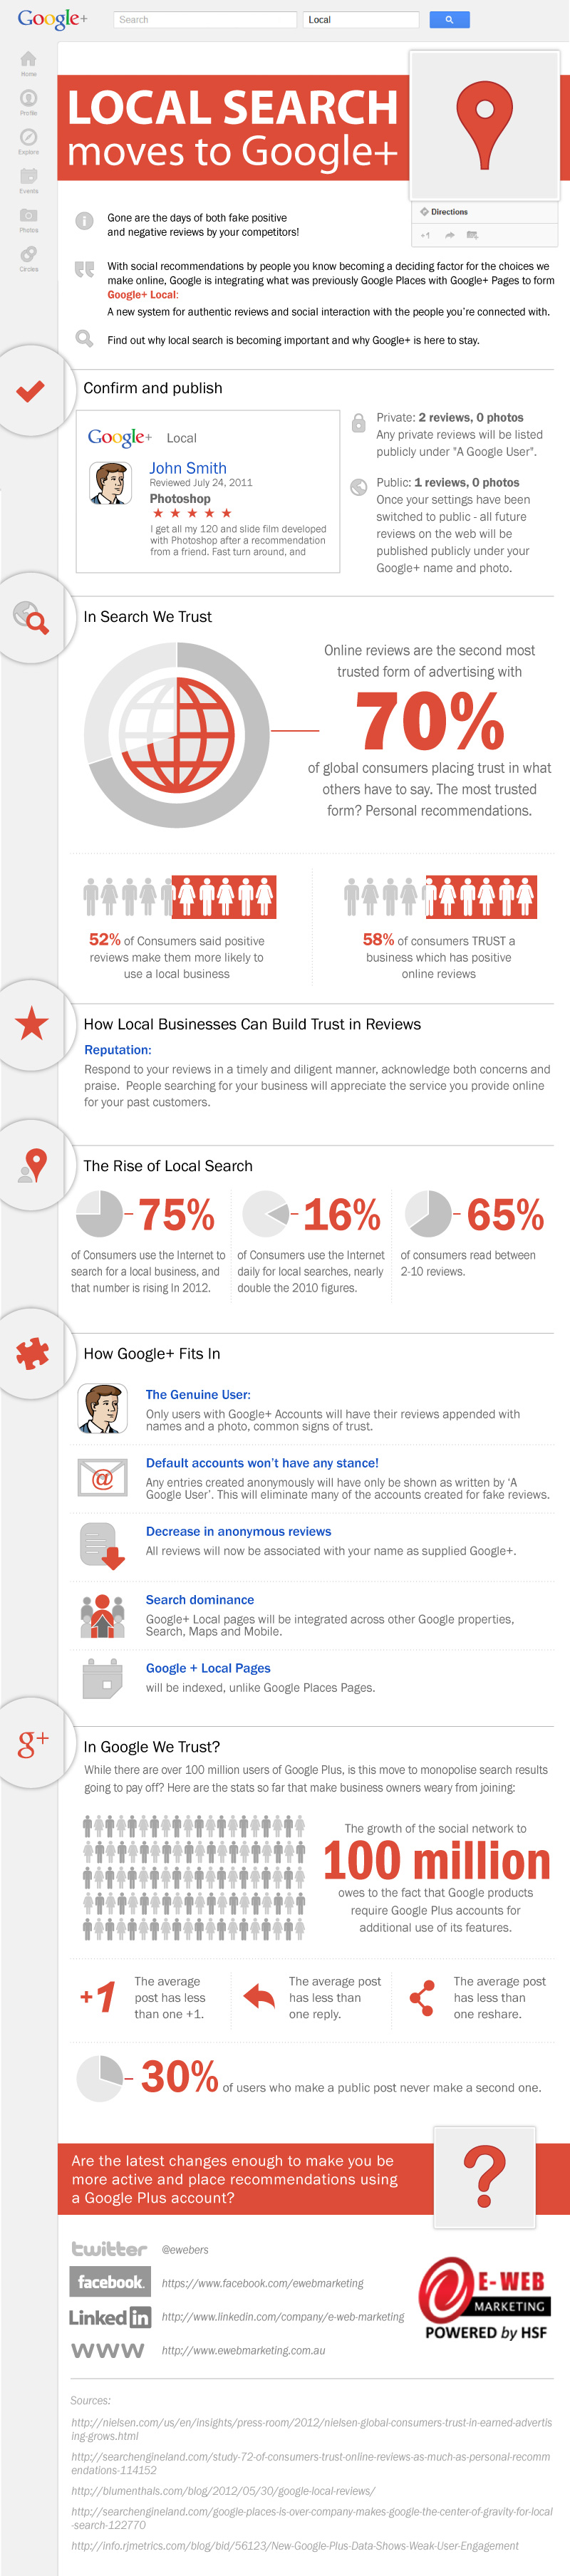 E-Web Marketing's Google+ Local Search Infographic